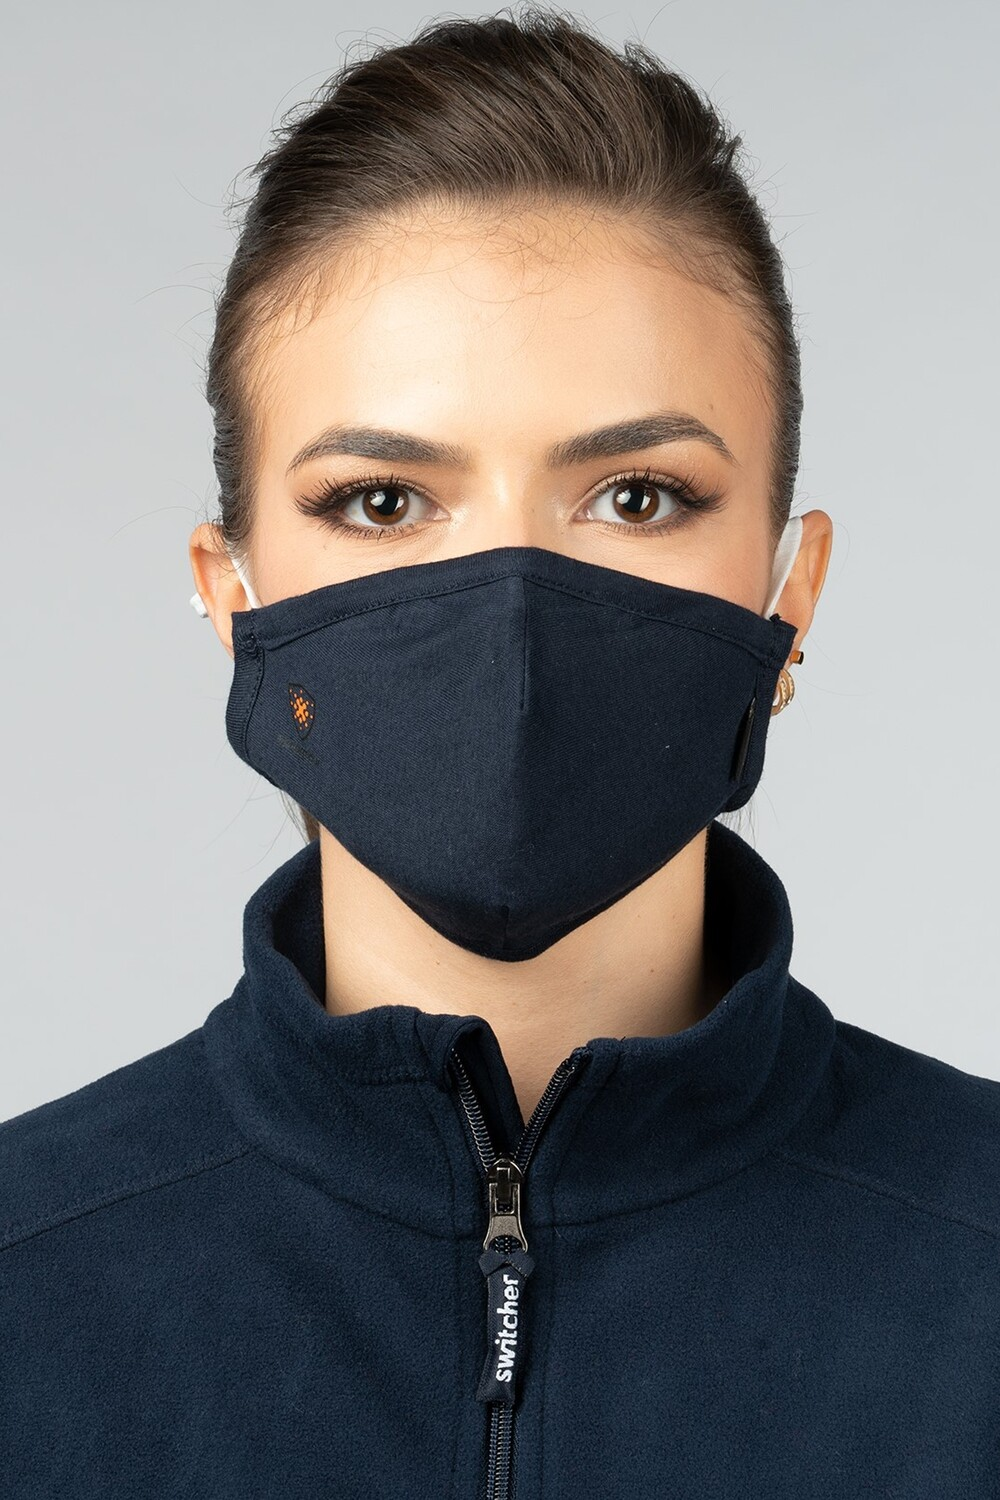 Viroarmour Switcher 3-layer washable mask powered by HeiQ Viroblock